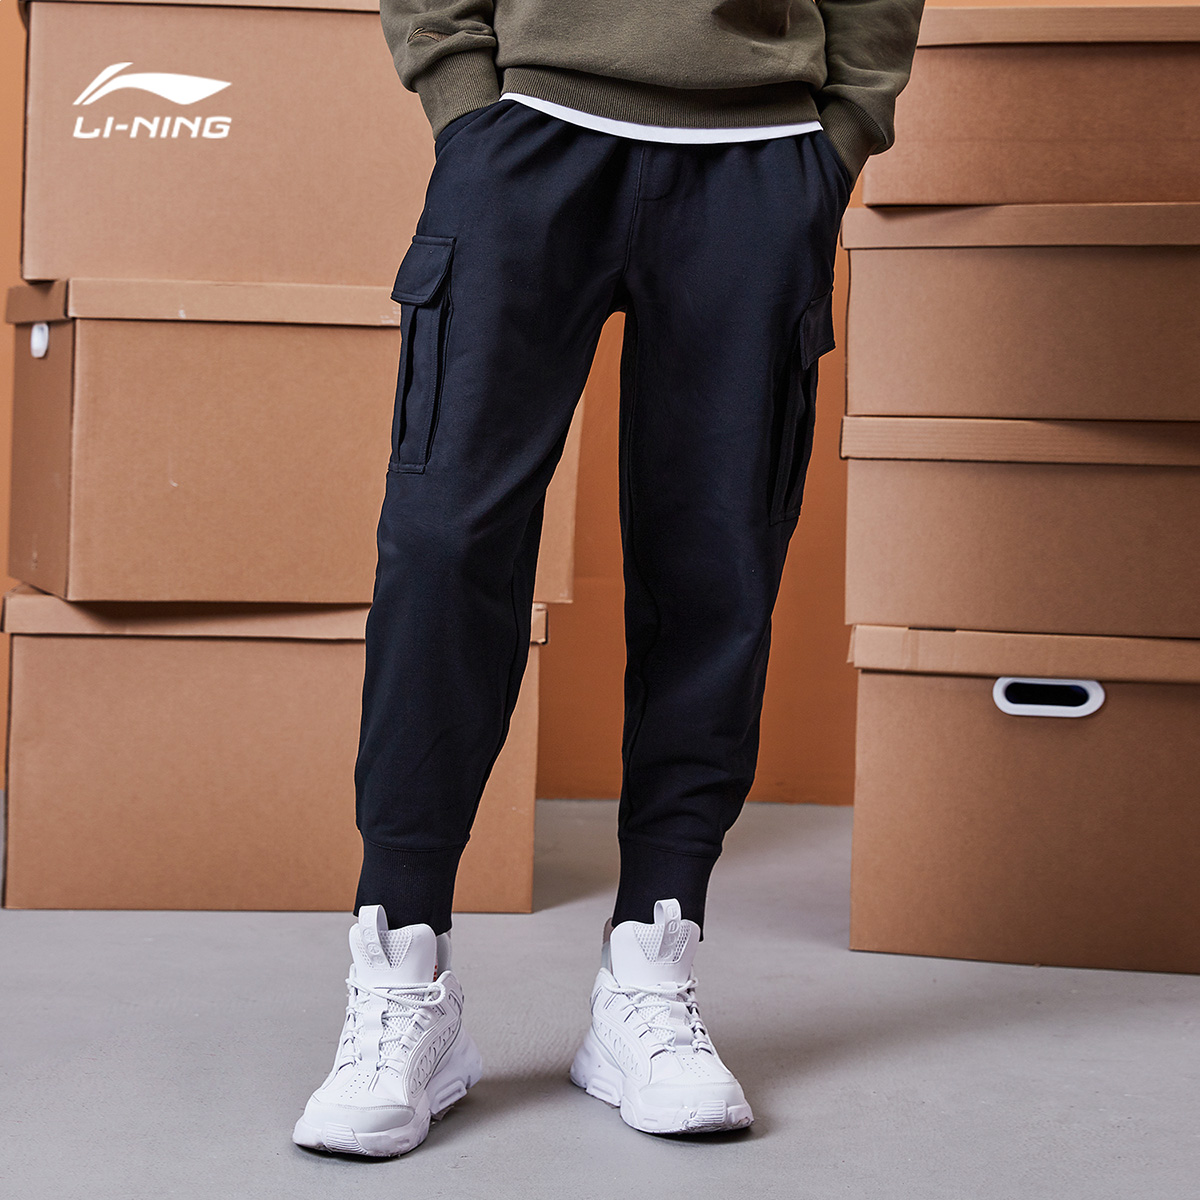 Li ningwei pants sports fashion series men's and women's casual loose spring new close knit sports pants